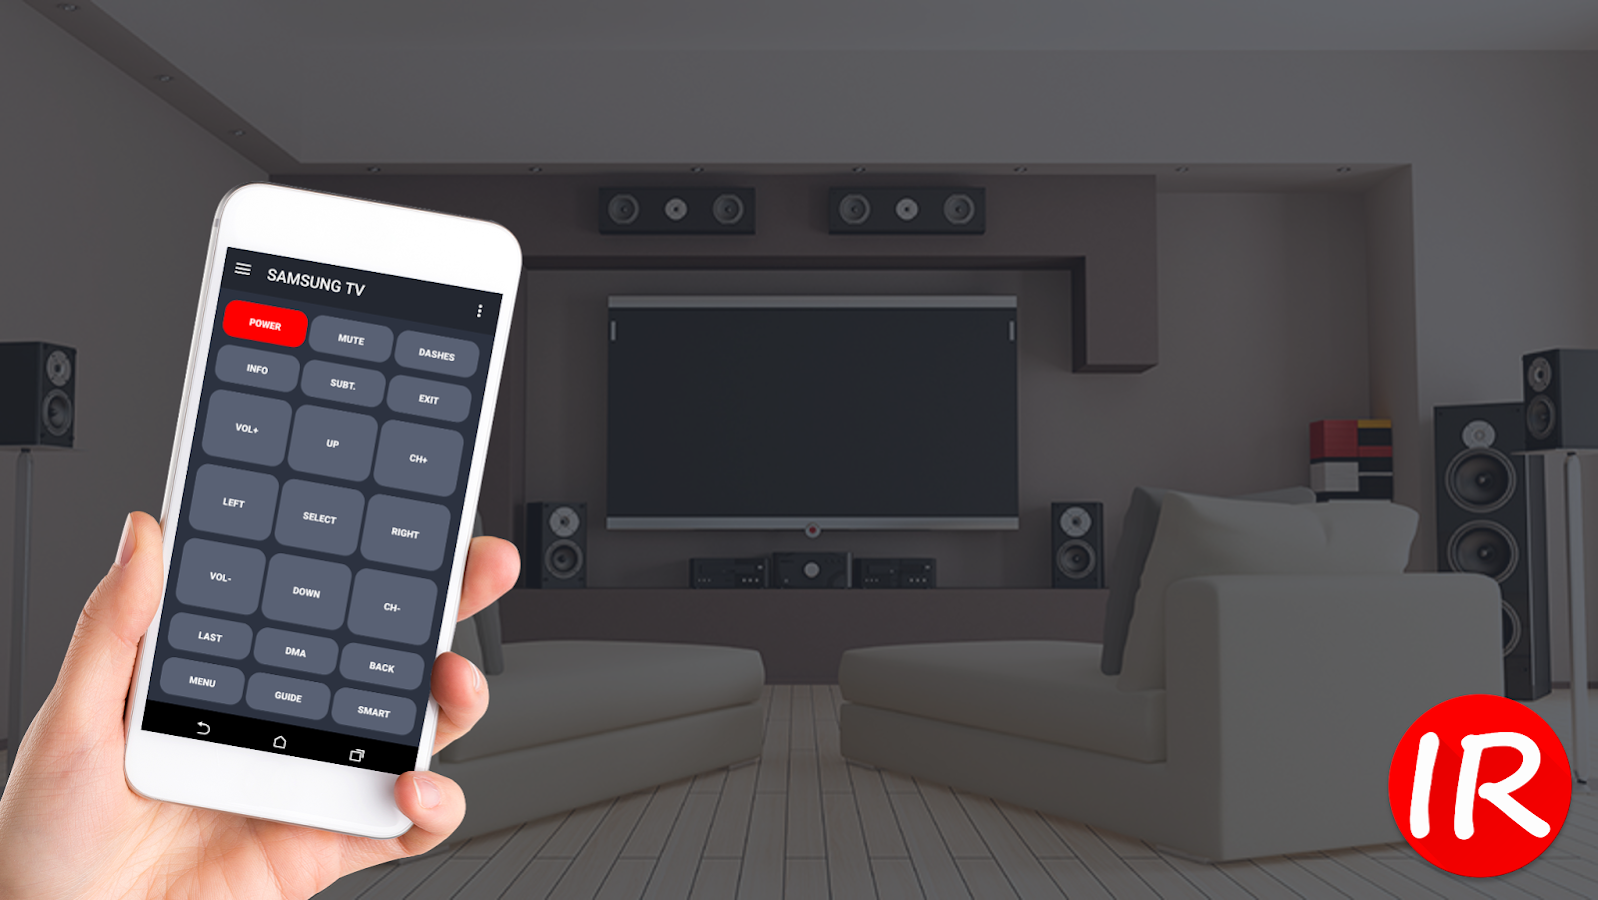 IR Universal Remote + WiFi Pro Screenshot 8